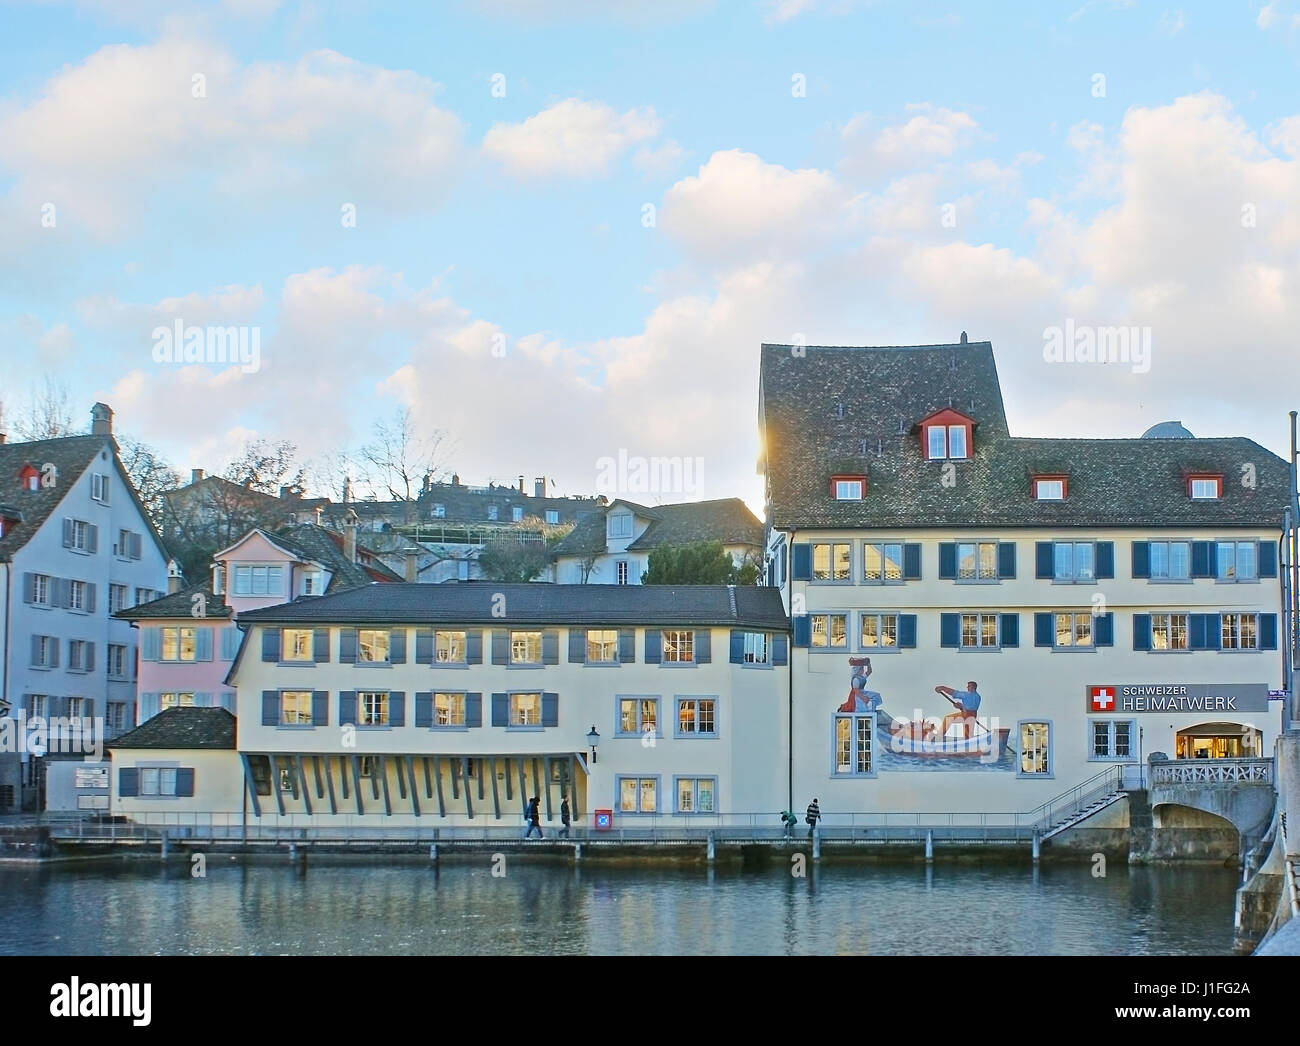 ZURICH, SWITZERLAND - MARCH 20, 2011: The old building on quay of Limmat River decorated with scenic mural, on March - Stock Image